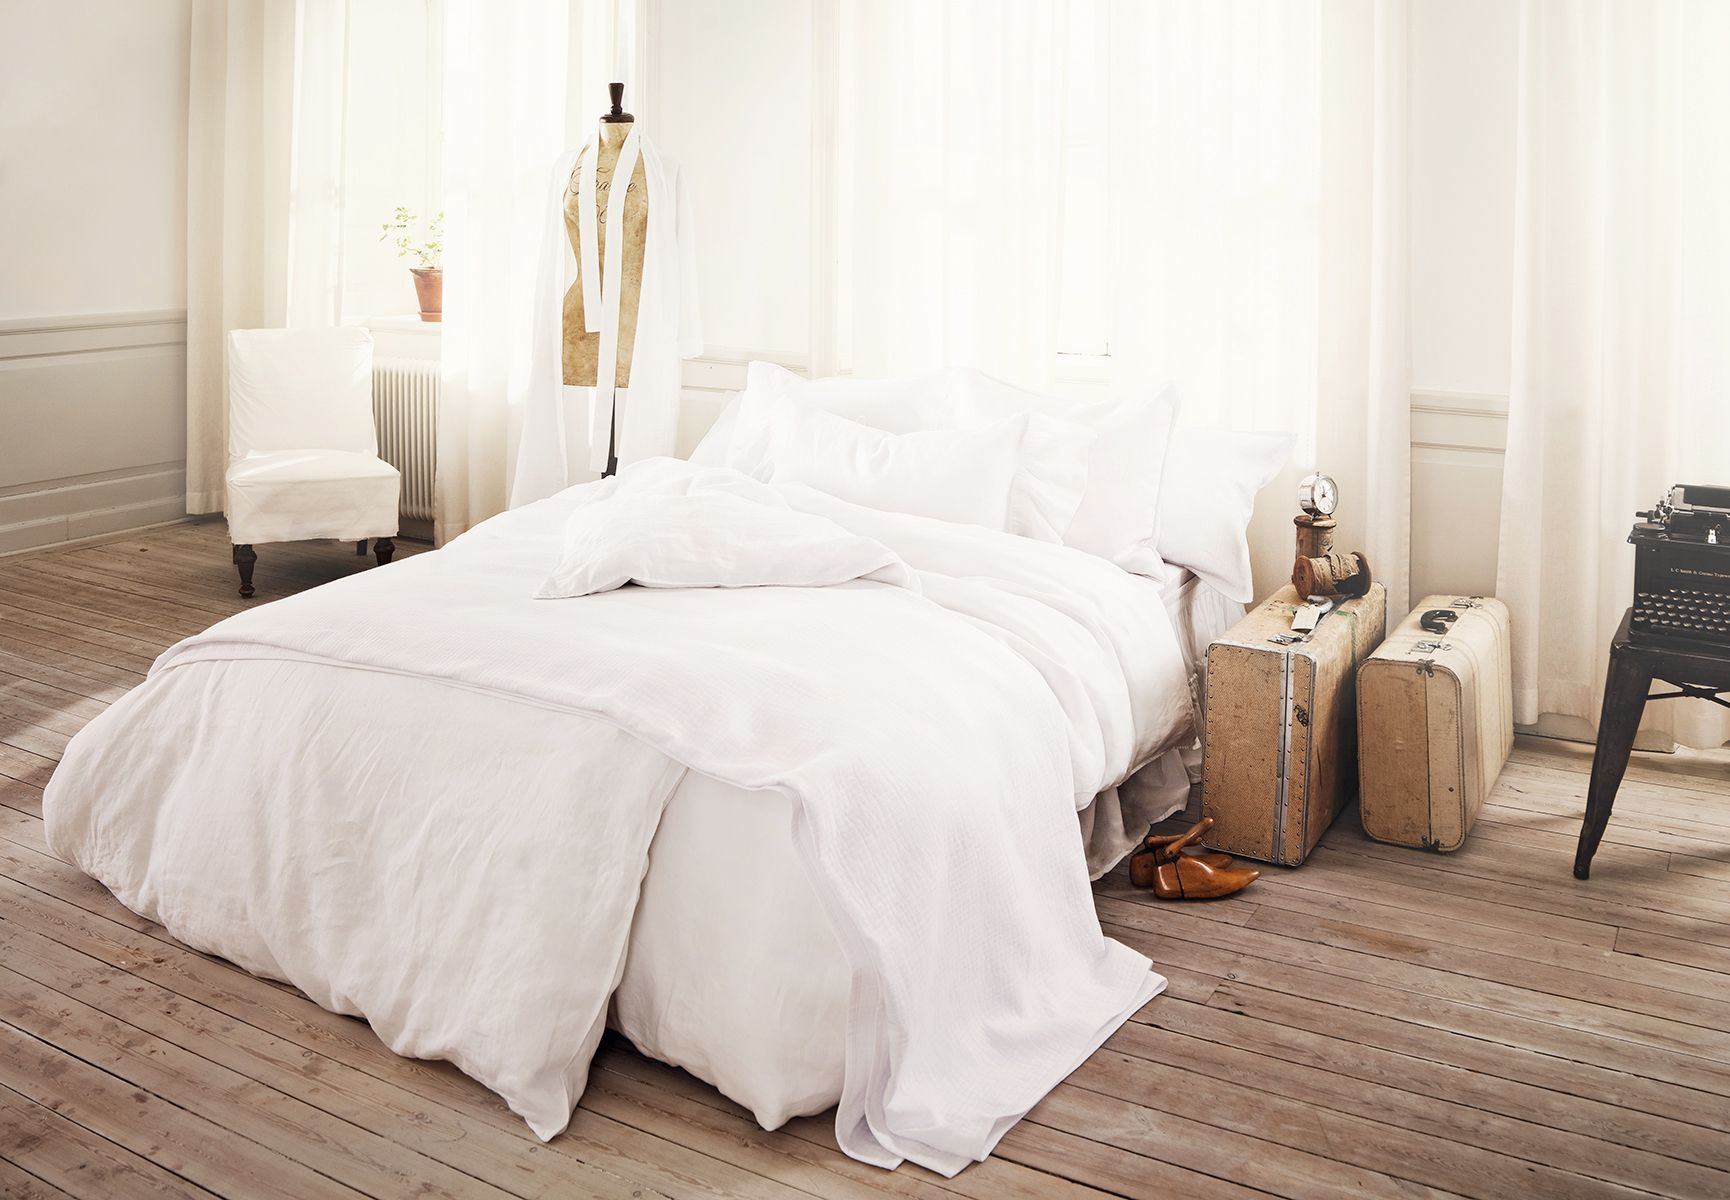 Packed and Ready to Go by Stella Nicolaisen via agentbauer.com #Bed #Stella_Nicolaisen #agentbauer